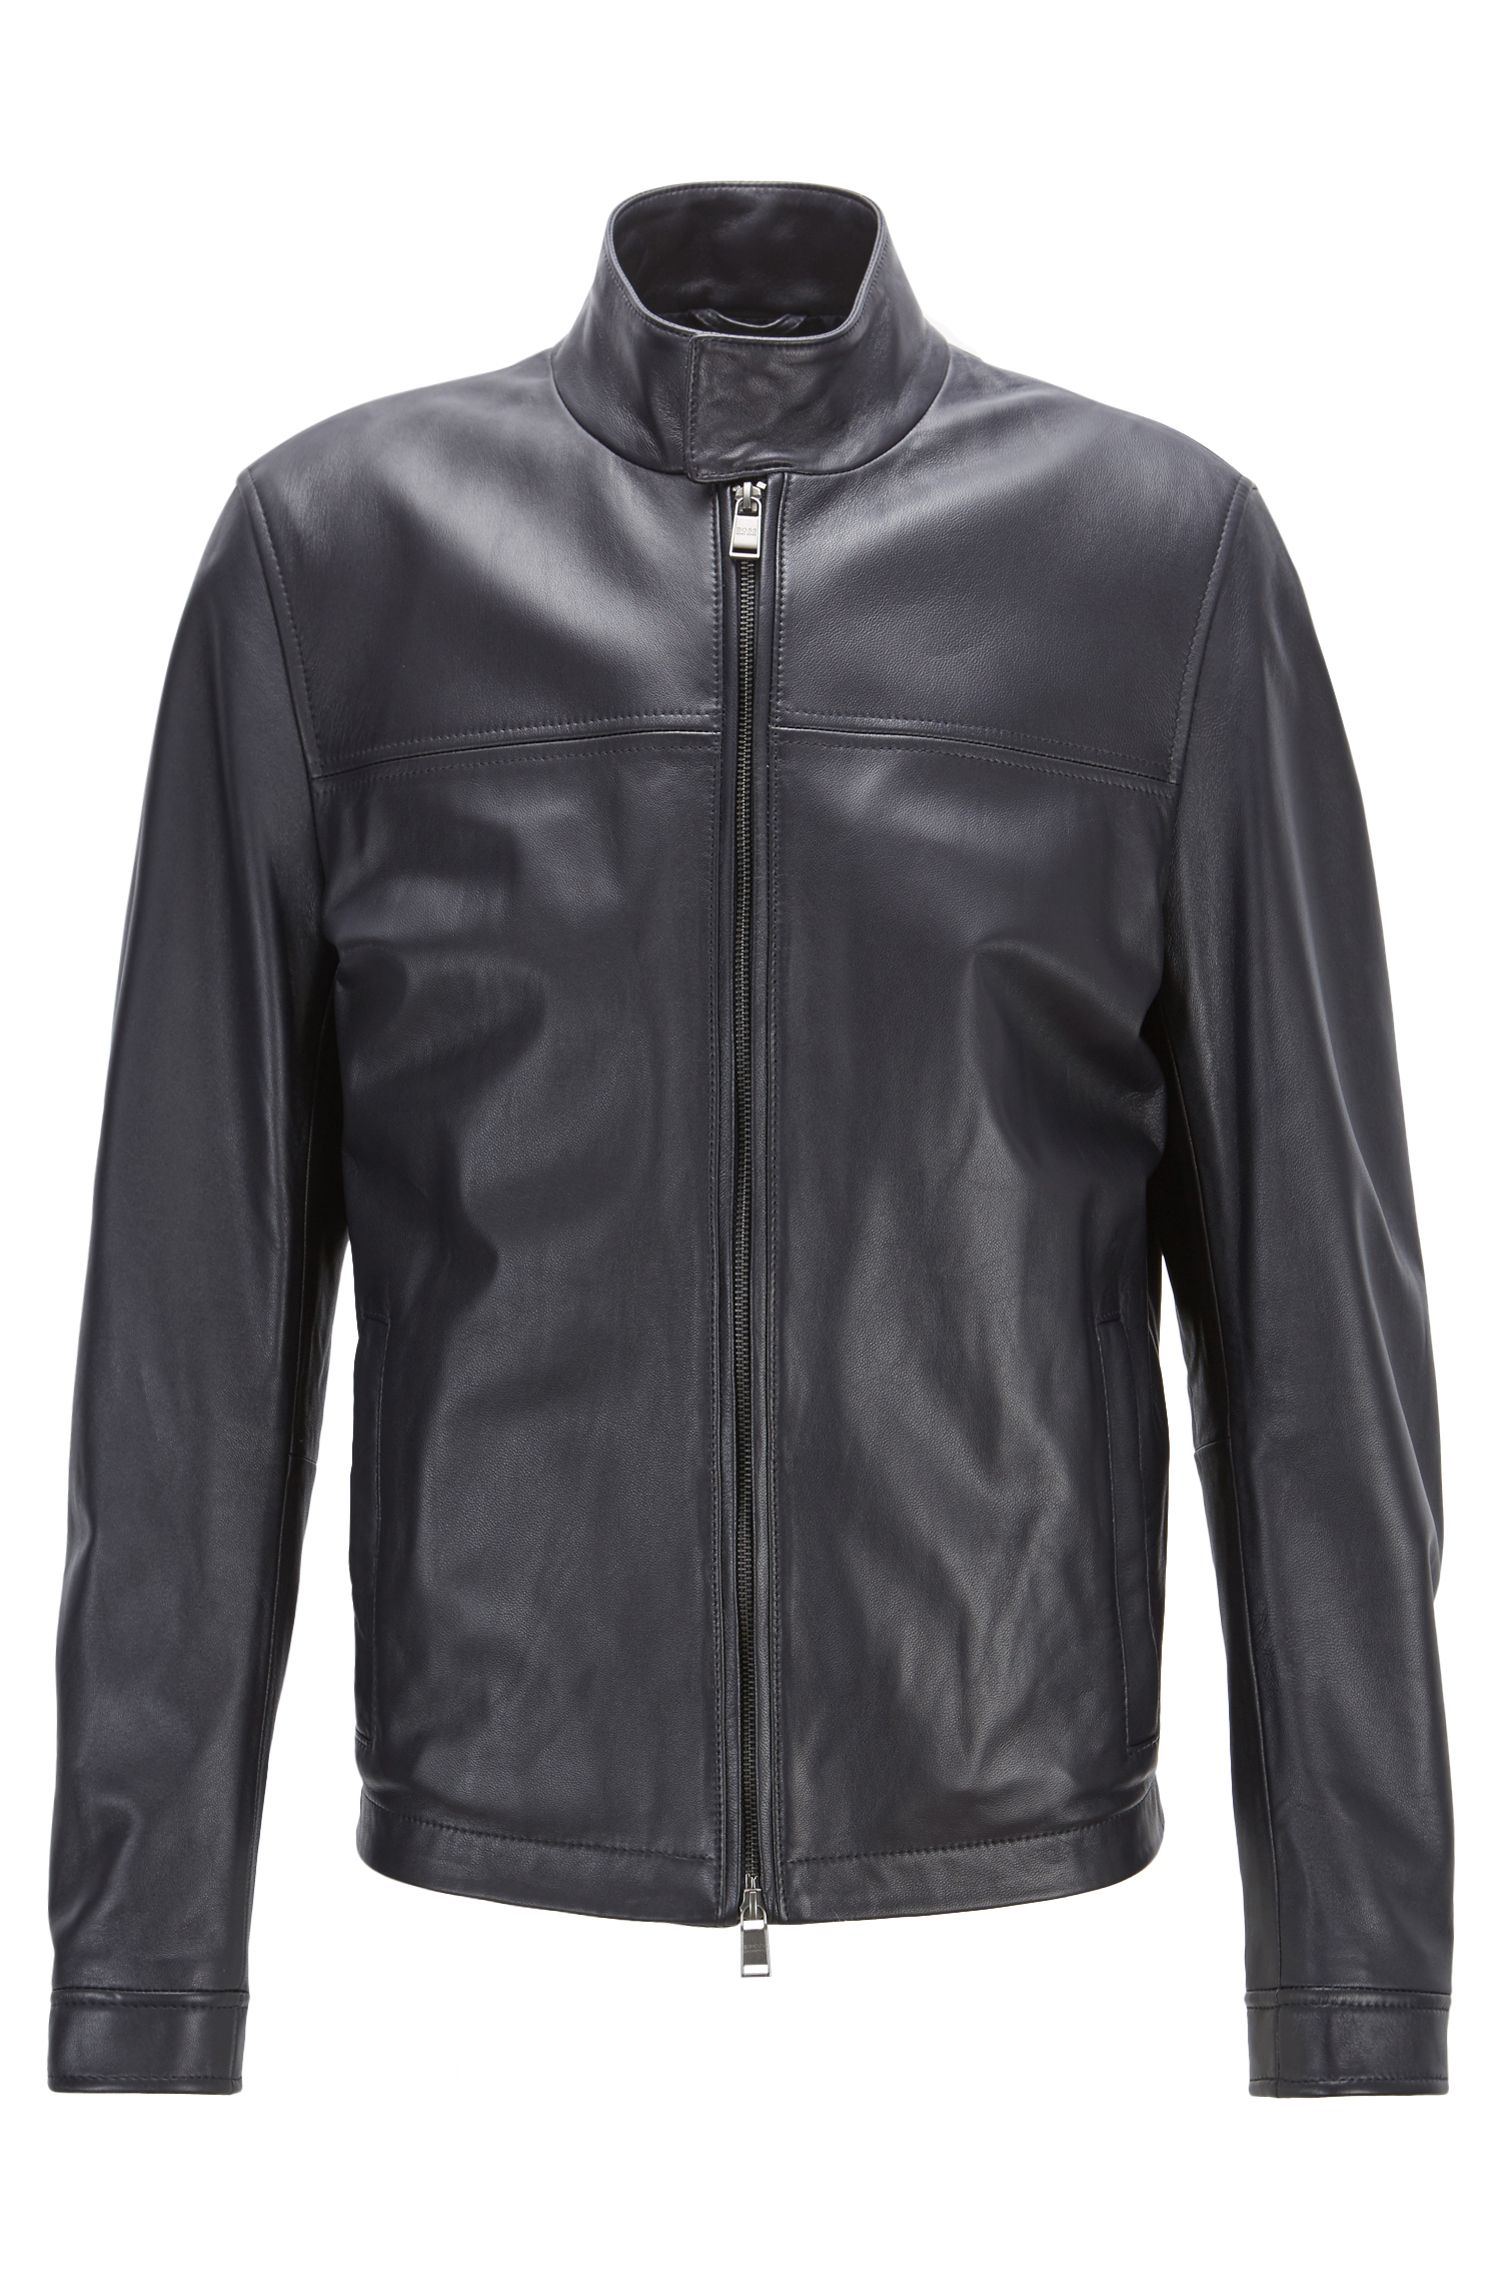 Blouson-style leather jacket with knitted trim